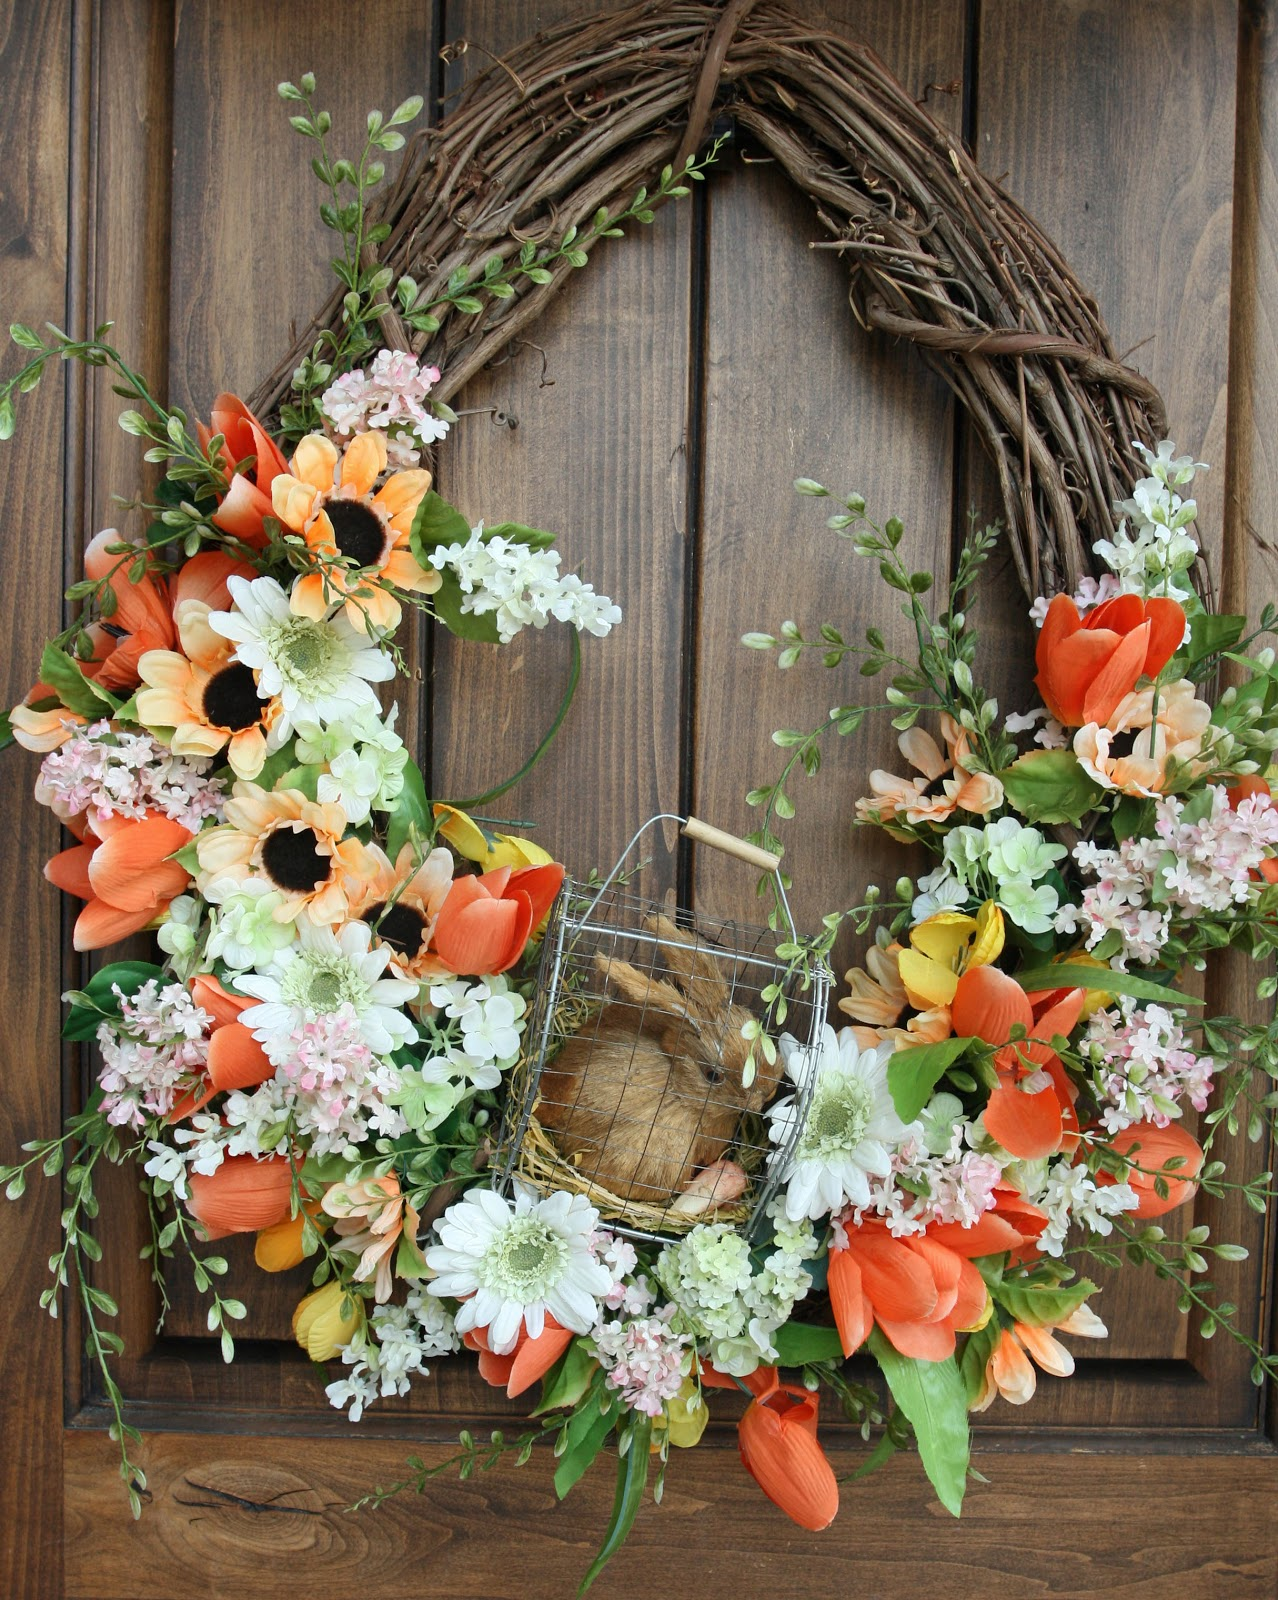 Spring Decorations For The Home Part - 42: Spring Porch/ Spring Decor Decorating Series, Part 3